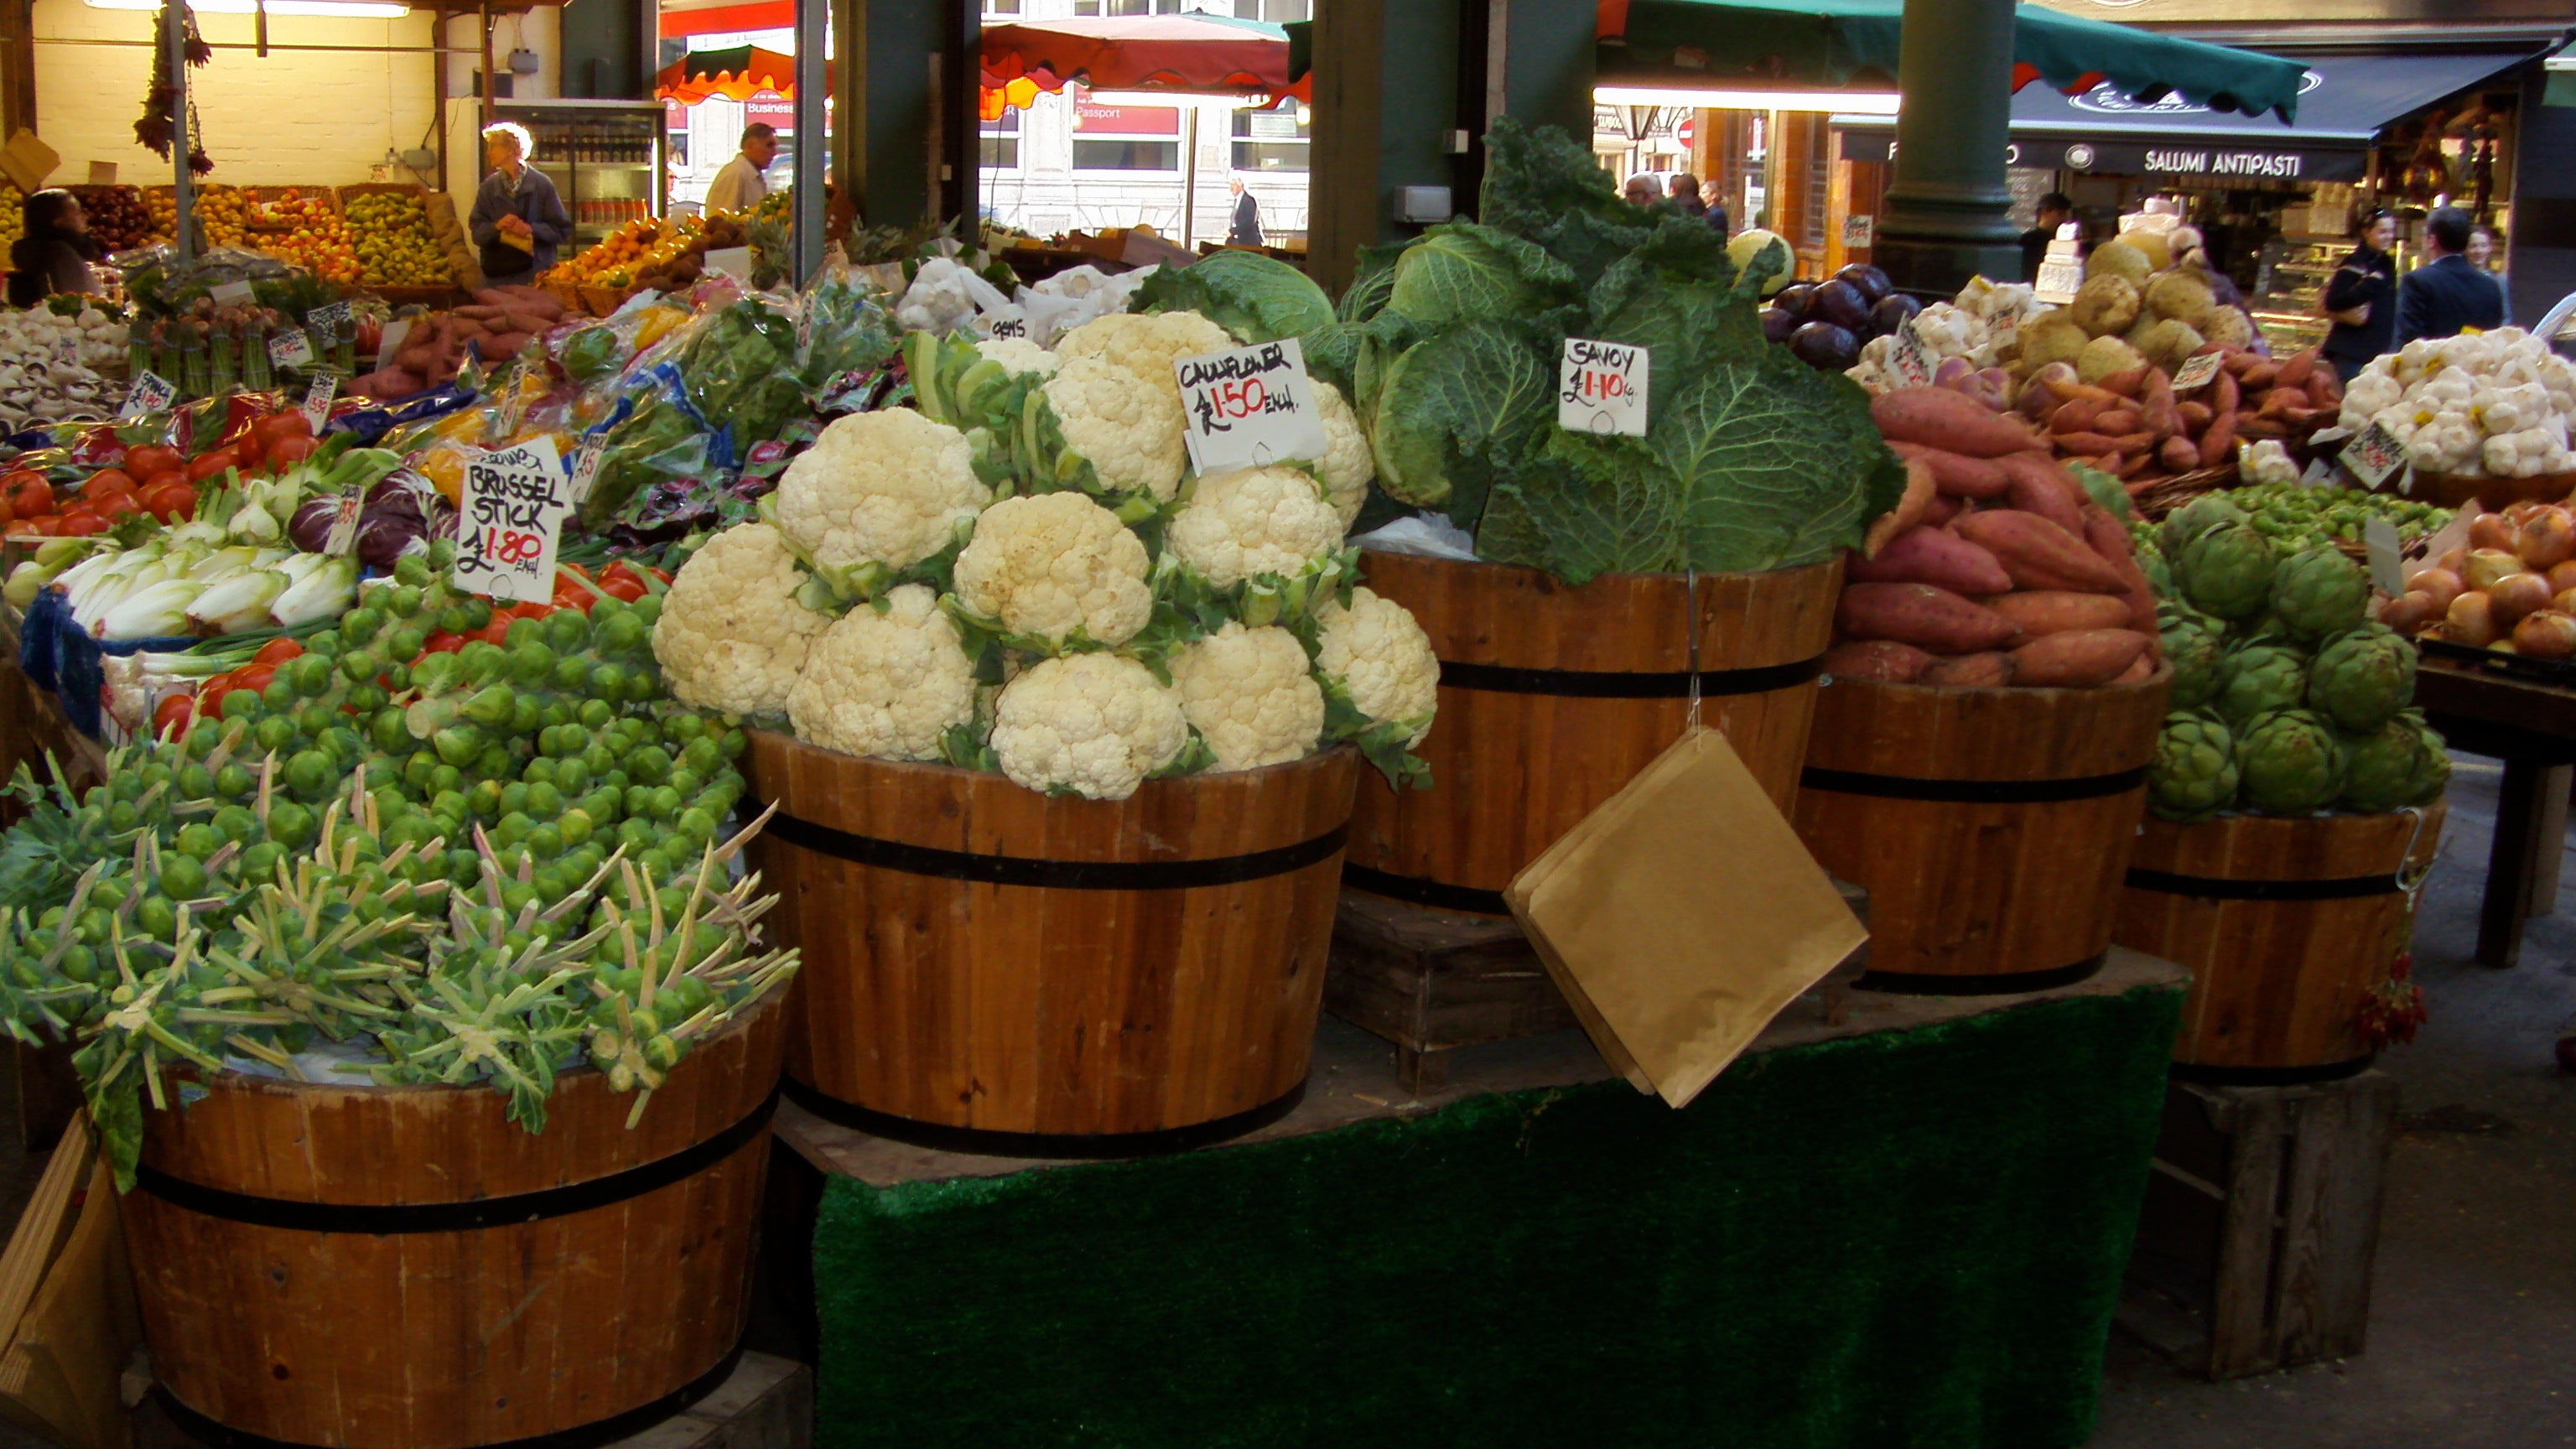 Floristería en Borough Market